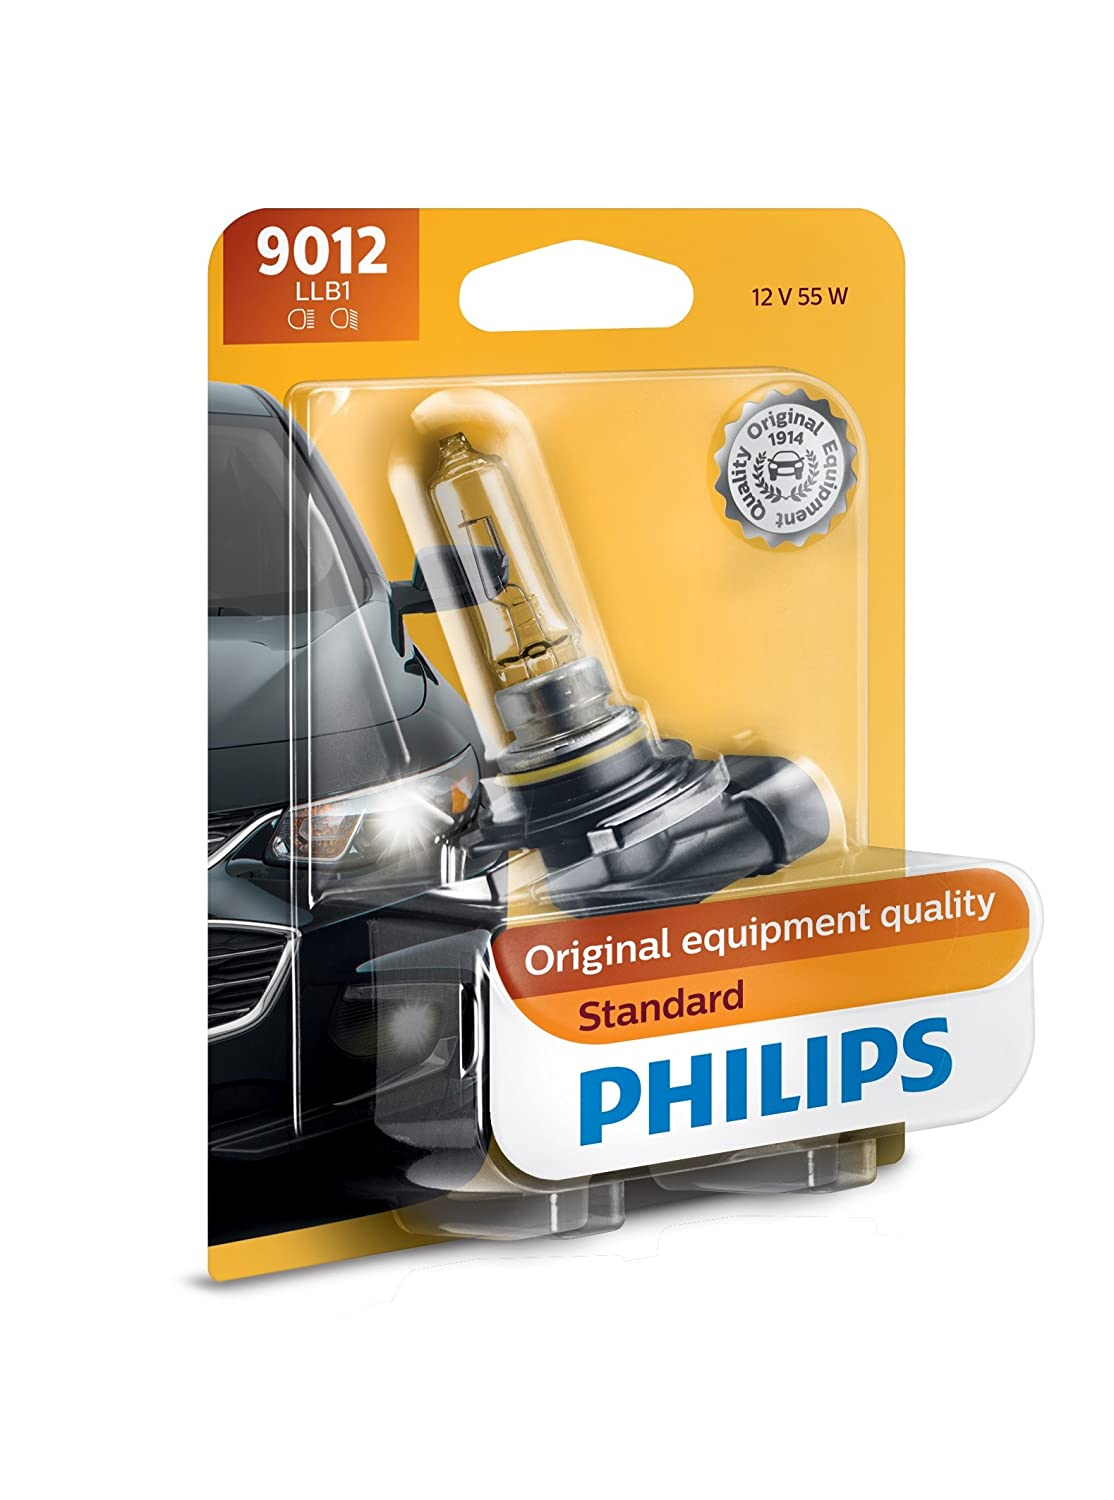 Philips 9012LLB1 Standard Halogen Headlight Bulb, Pack of 1